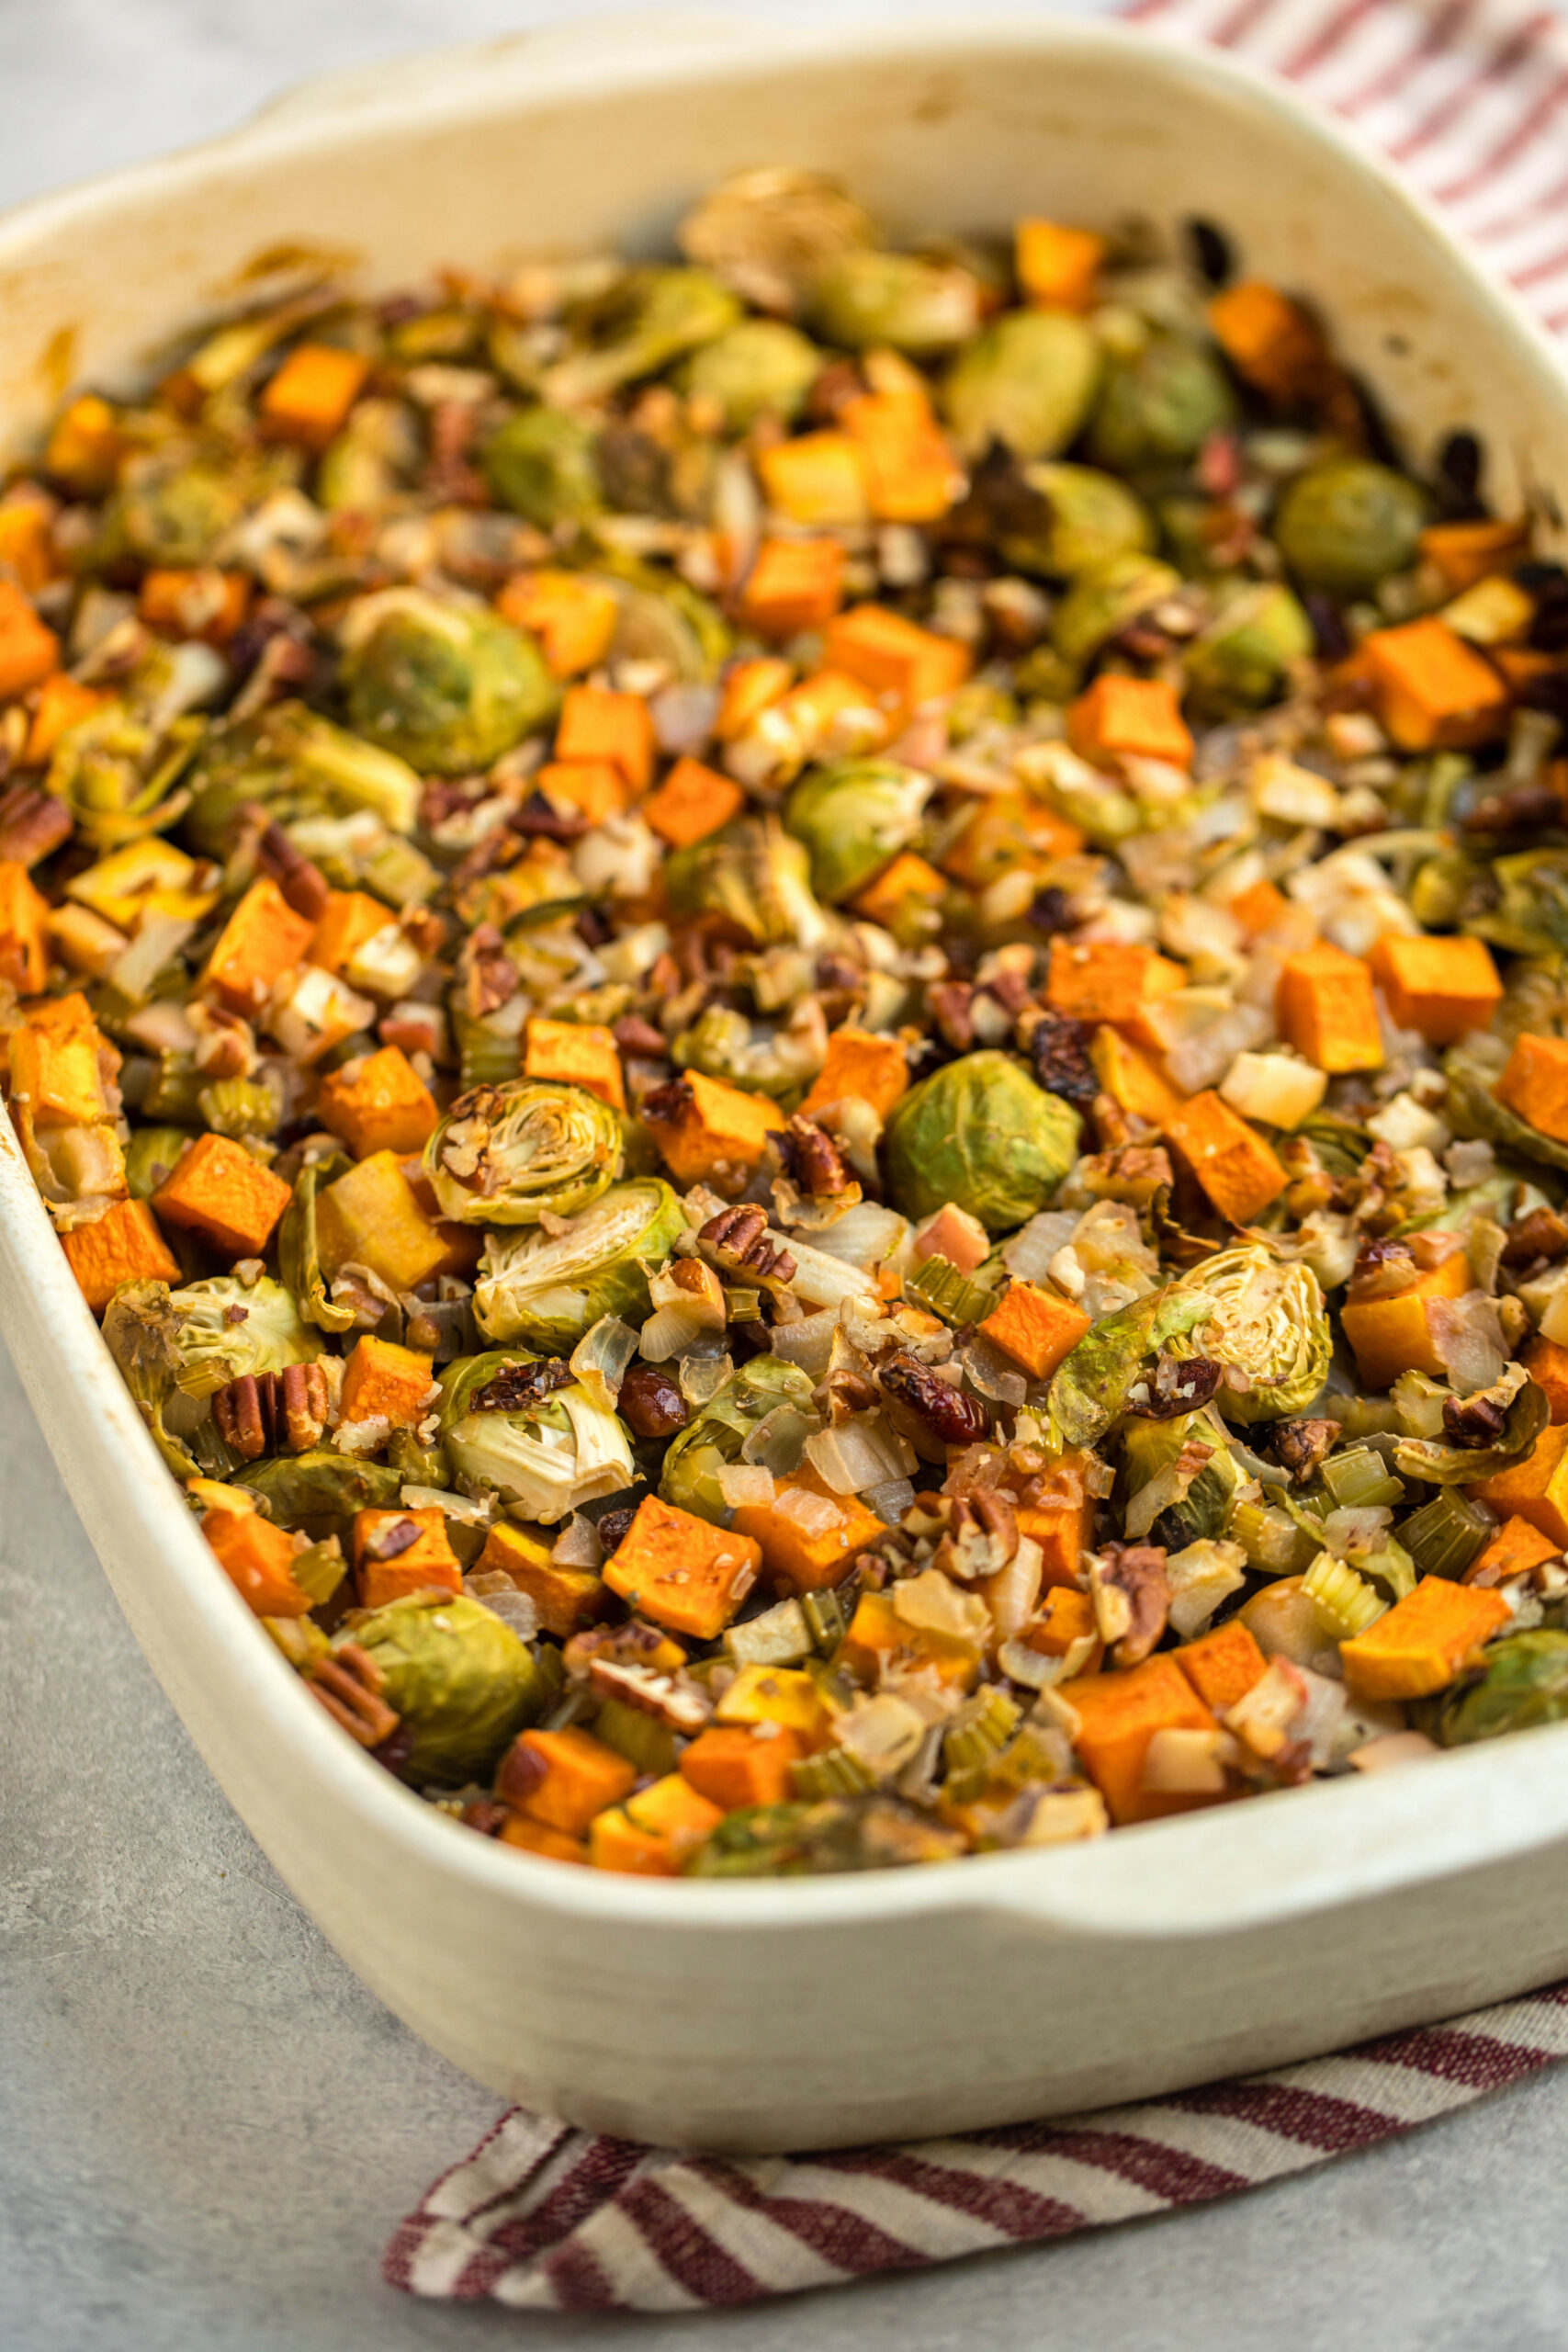 Fall Roasted Vegetable Casserole - From My Bowl - recipes vegetable casseroles healthy